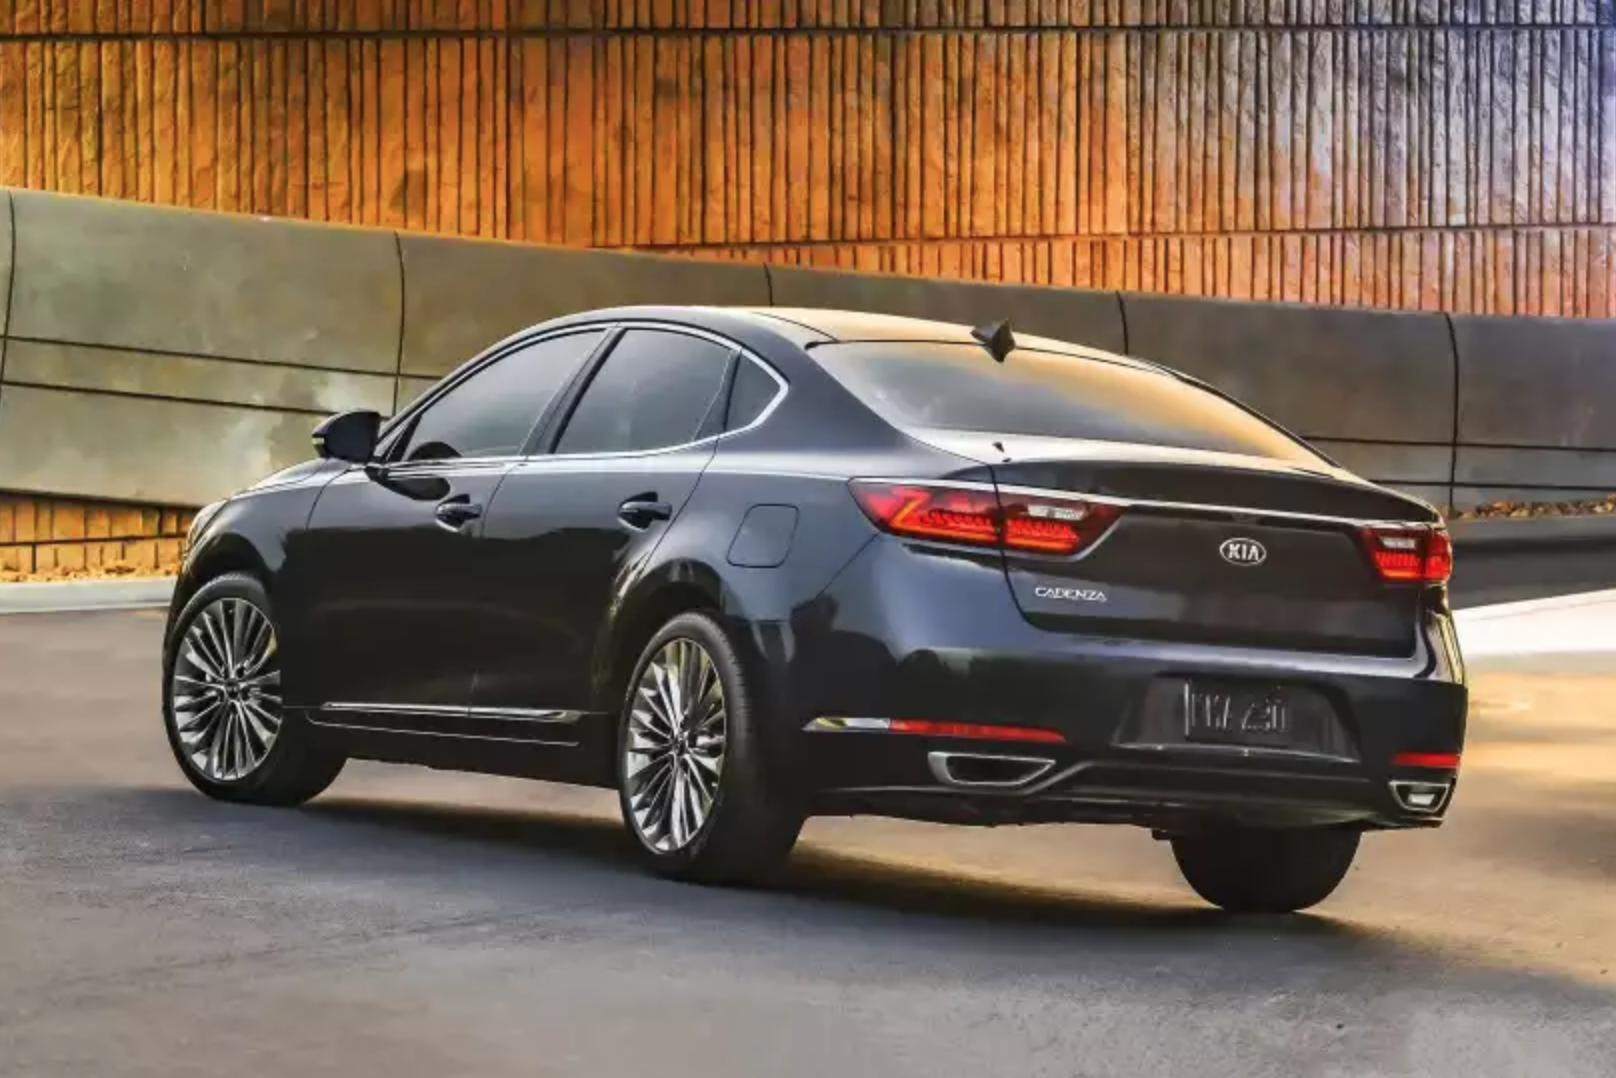 2018 Kia Cadenza in North Carolina